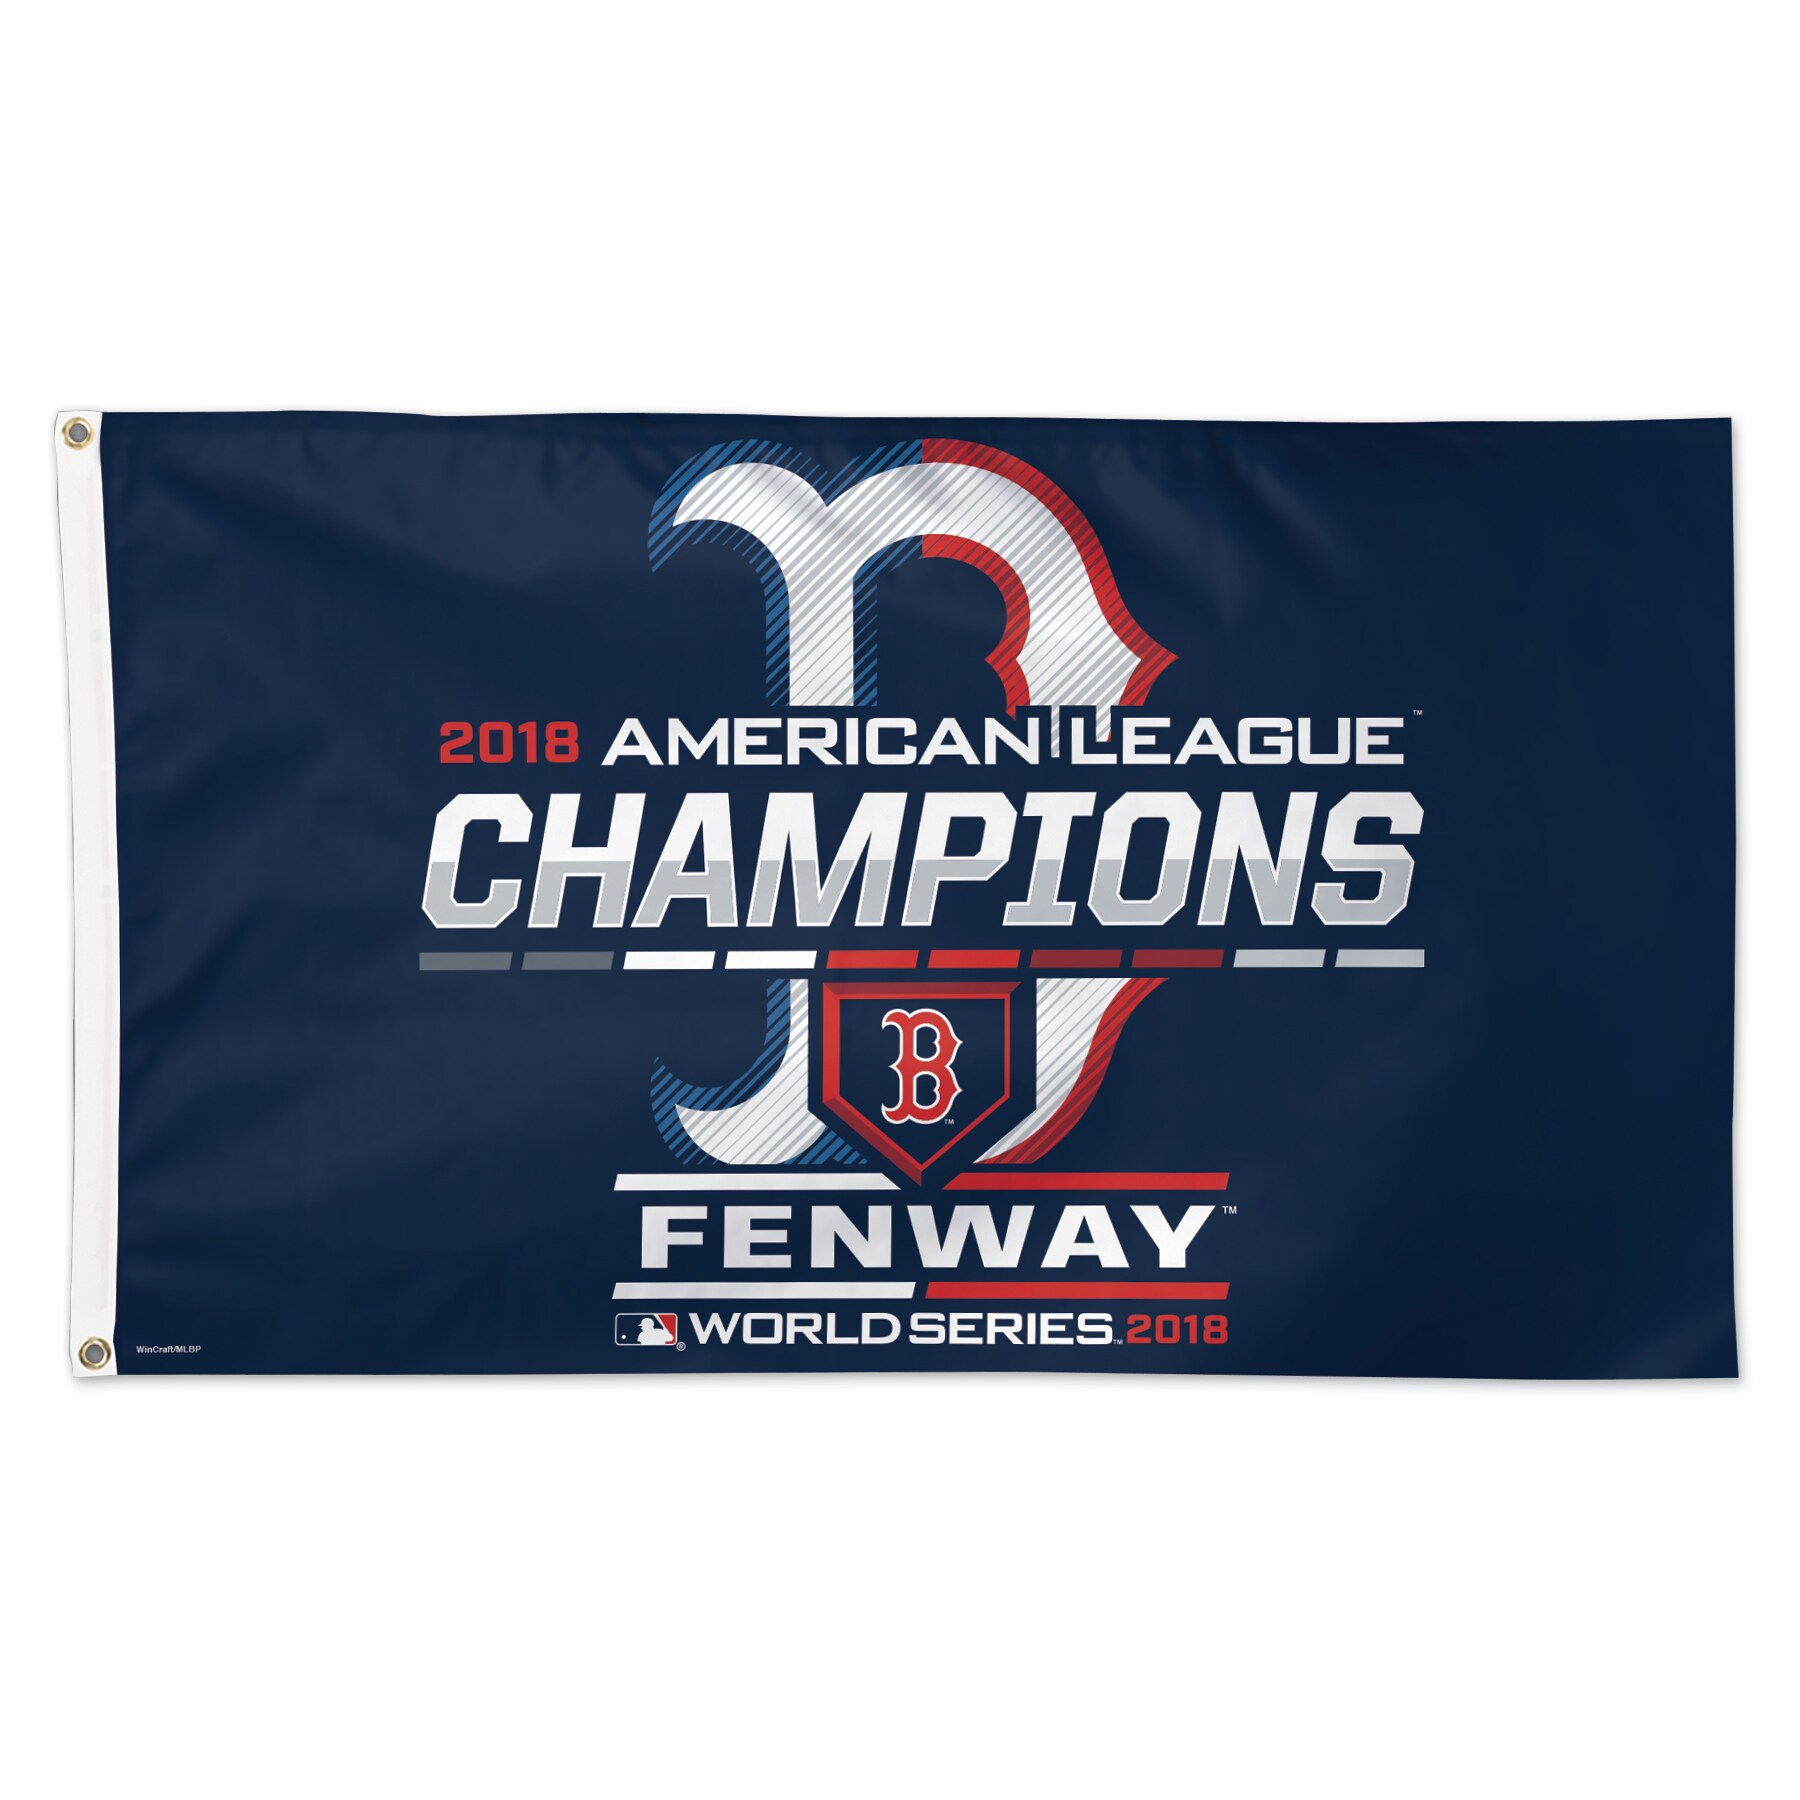 Boston Red Sox WinCraft 2018 American League Champions On-Field Celebration 1-Sided 3' x 5' Deluxe Flag